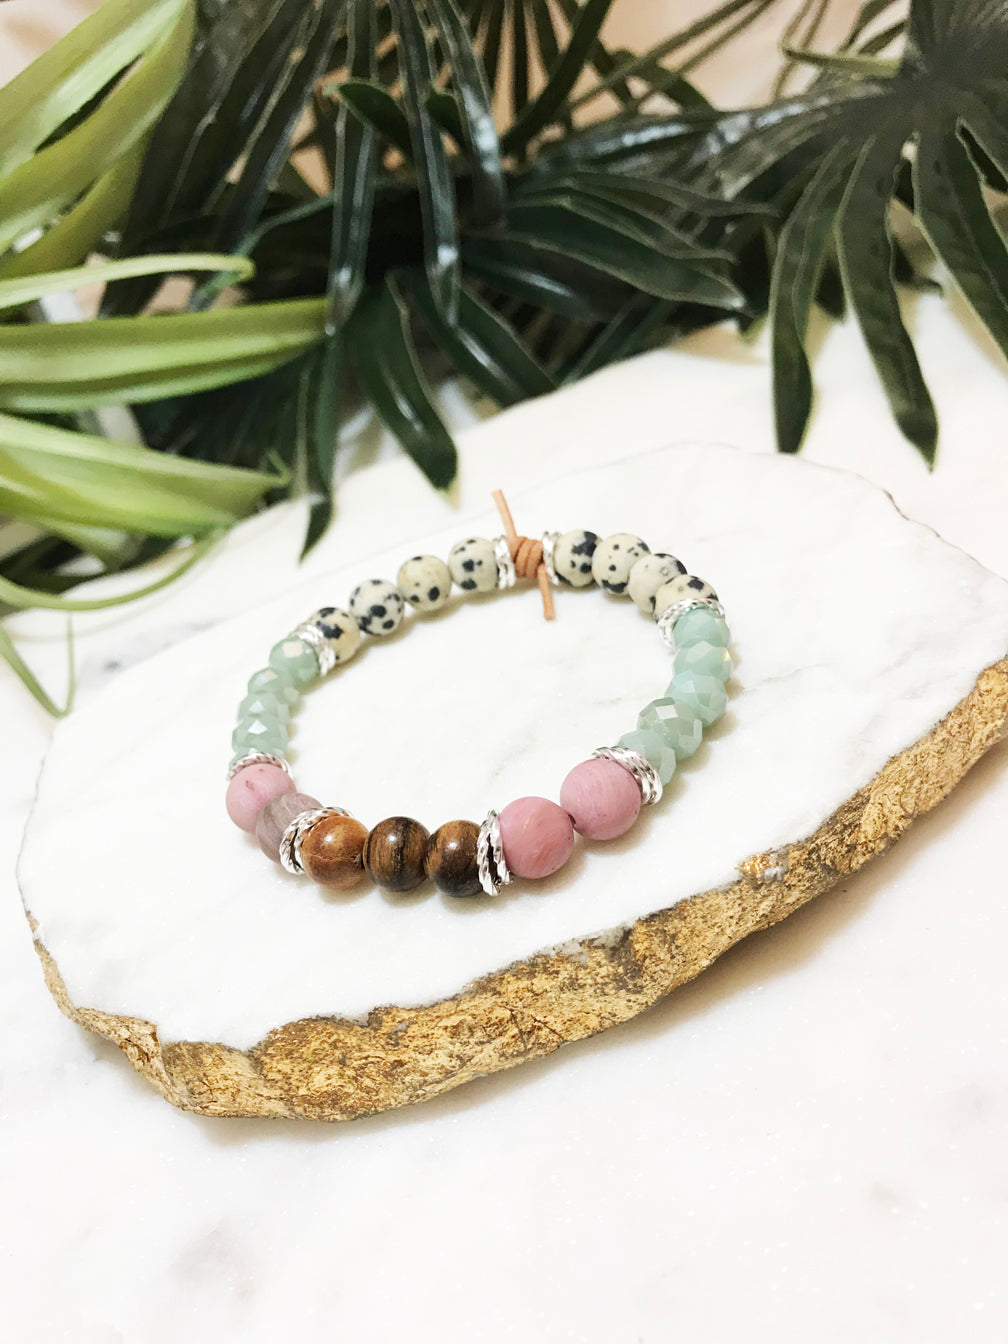 therapy bracelet - TH-061-BR